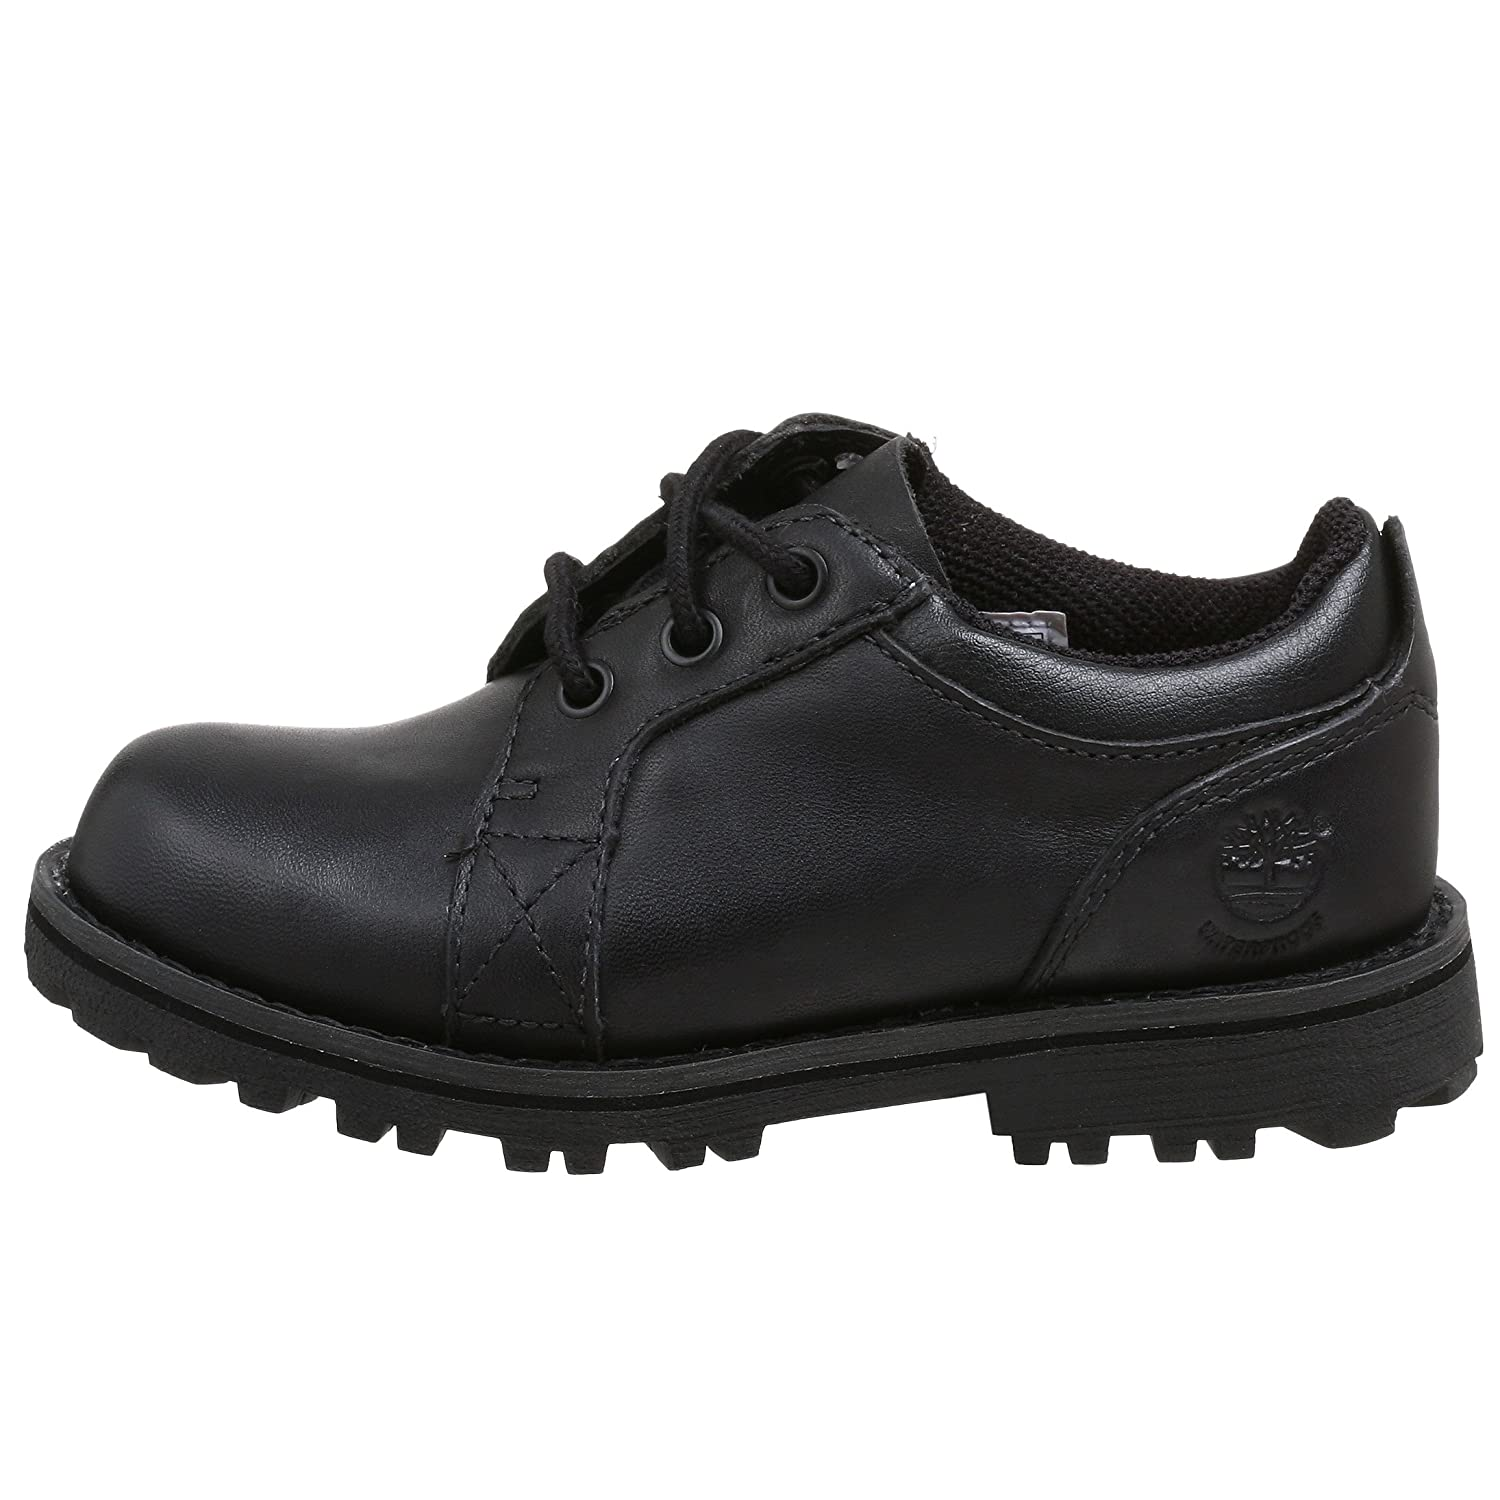 Timberland Toddler//Little Kid Asphalt Trail Lug Lace Oxford Asphalt Trail Earthkeepers Chelsea-TODLK